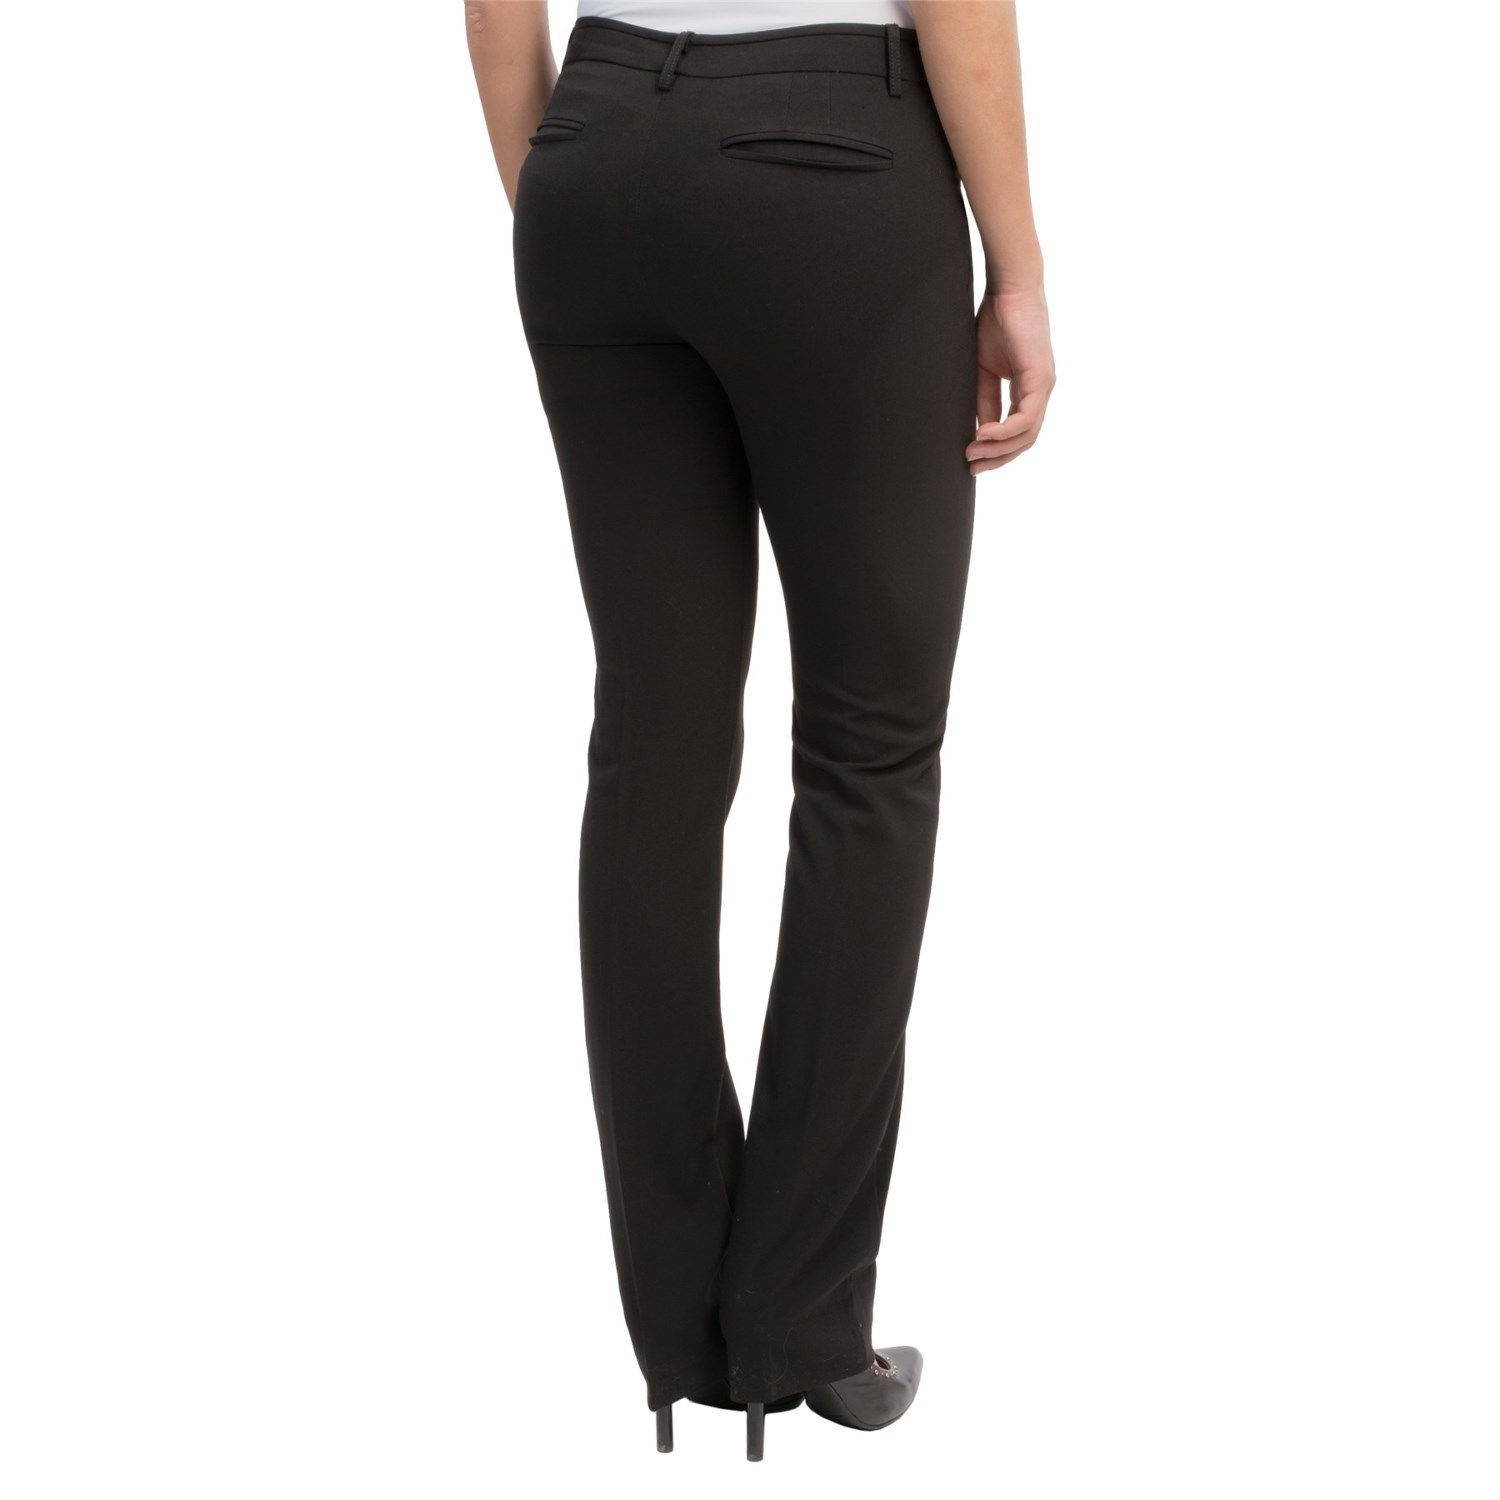 Original AB Studio Milan StraightLeg Dress Pants  Women39s